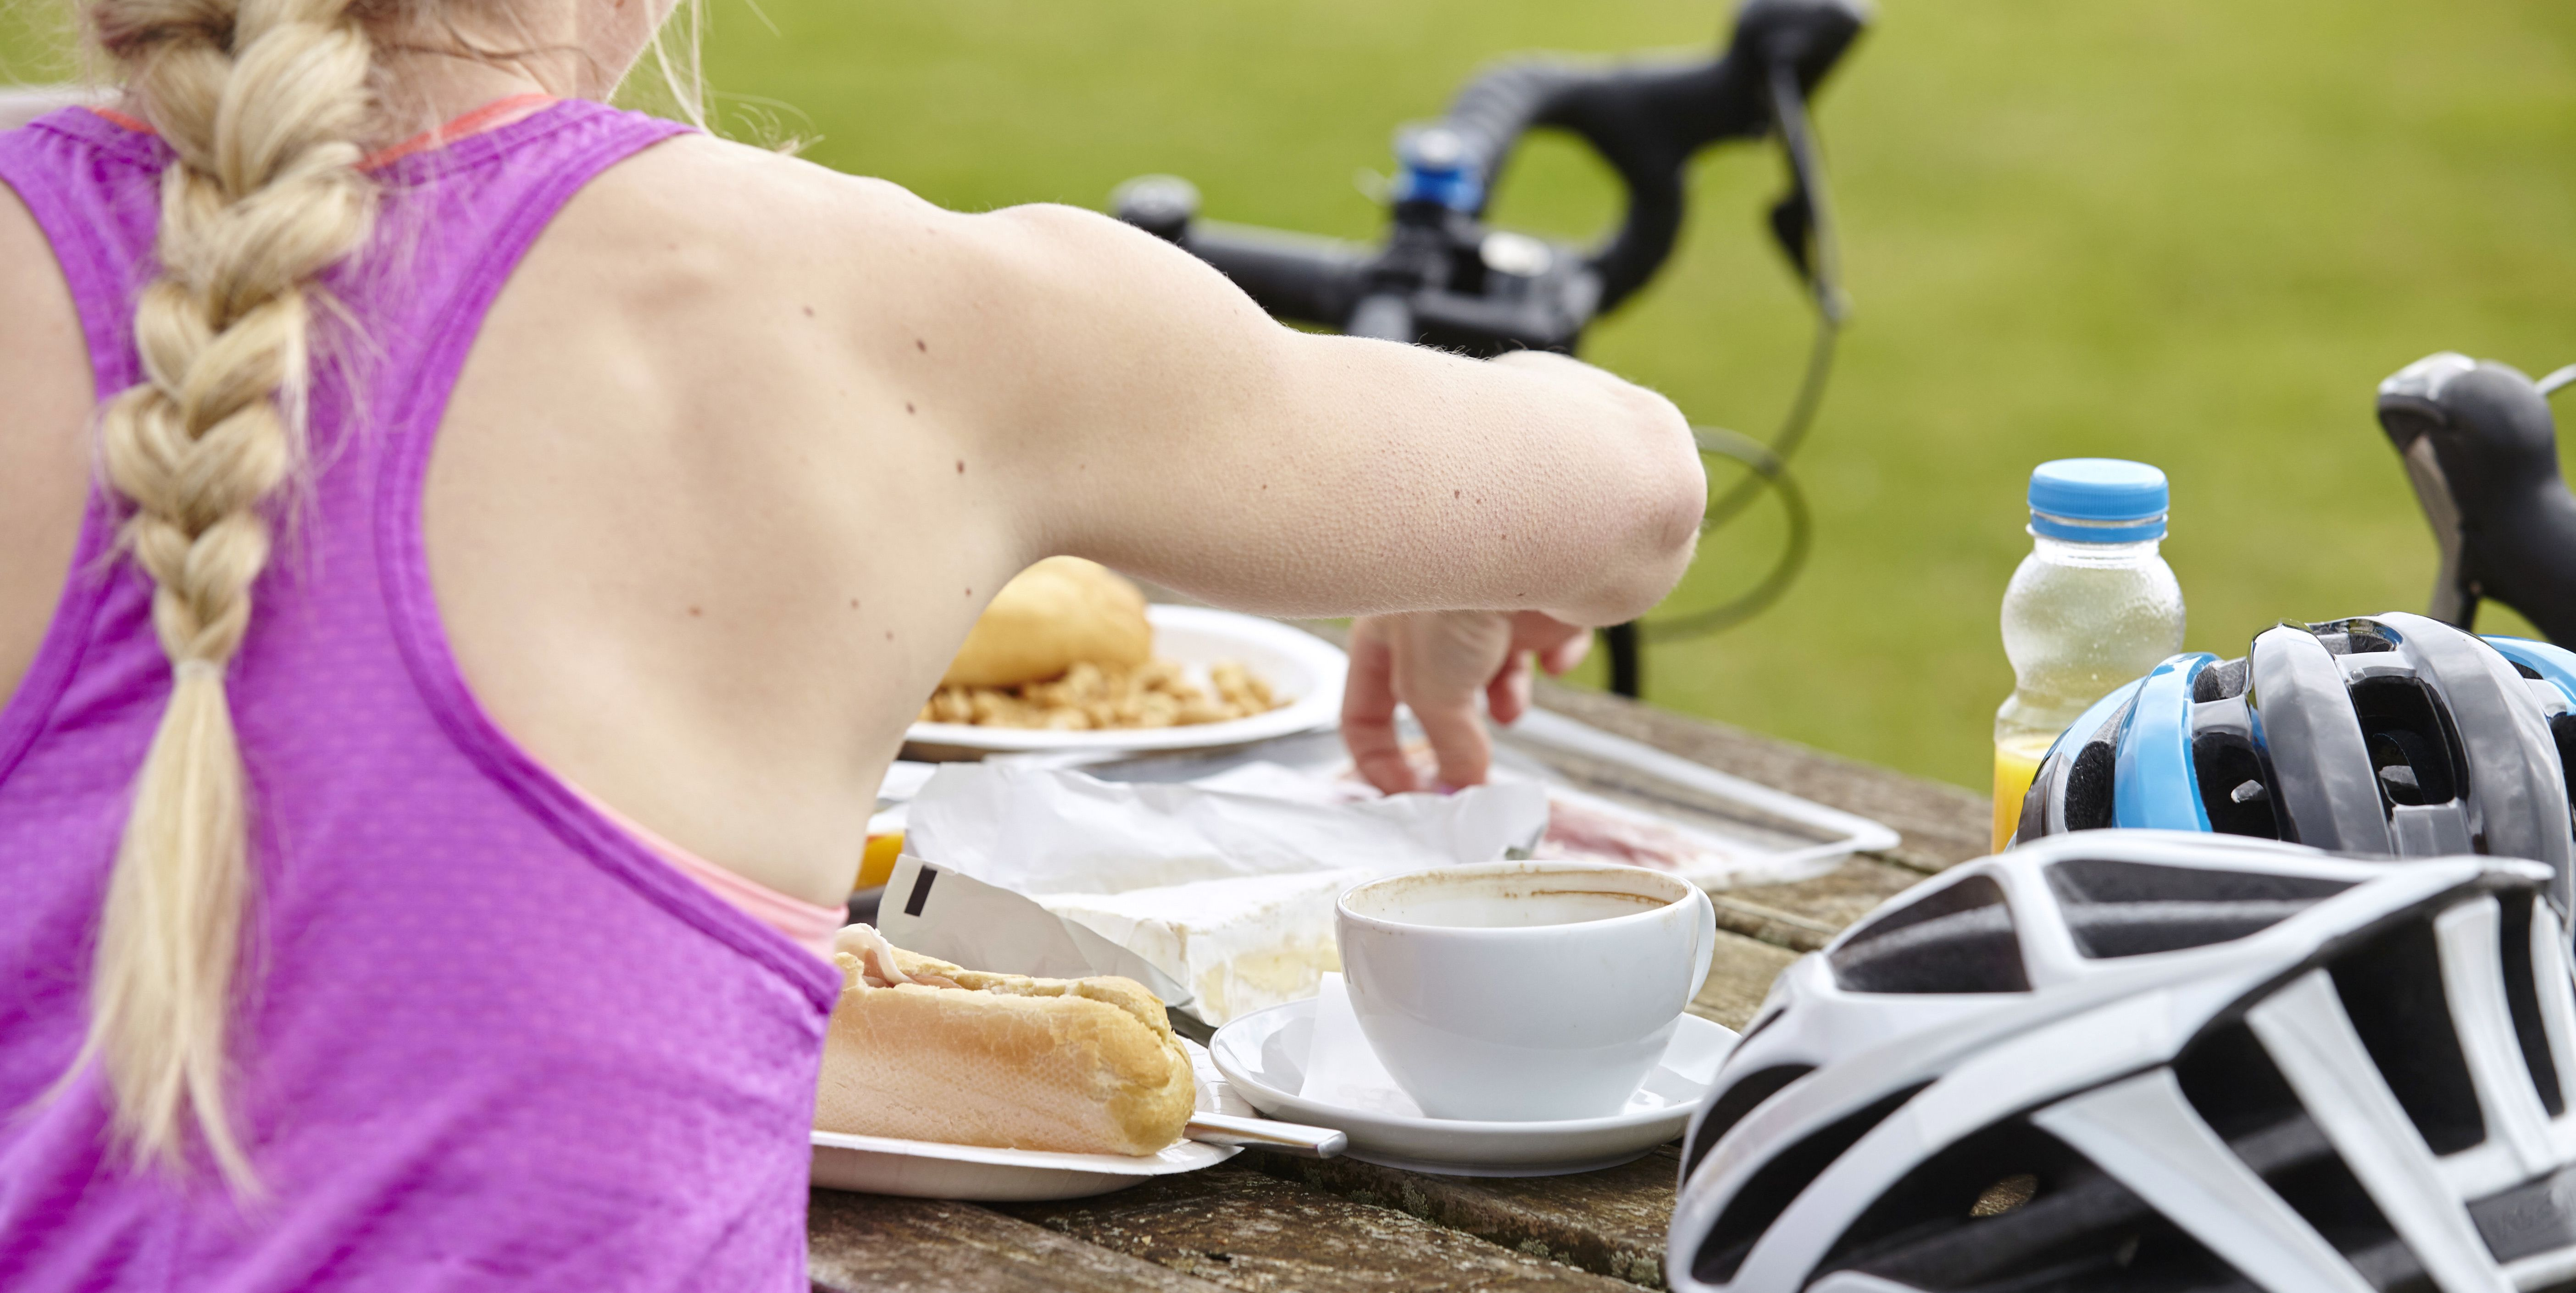 Cyclist having breakfast at picnic table